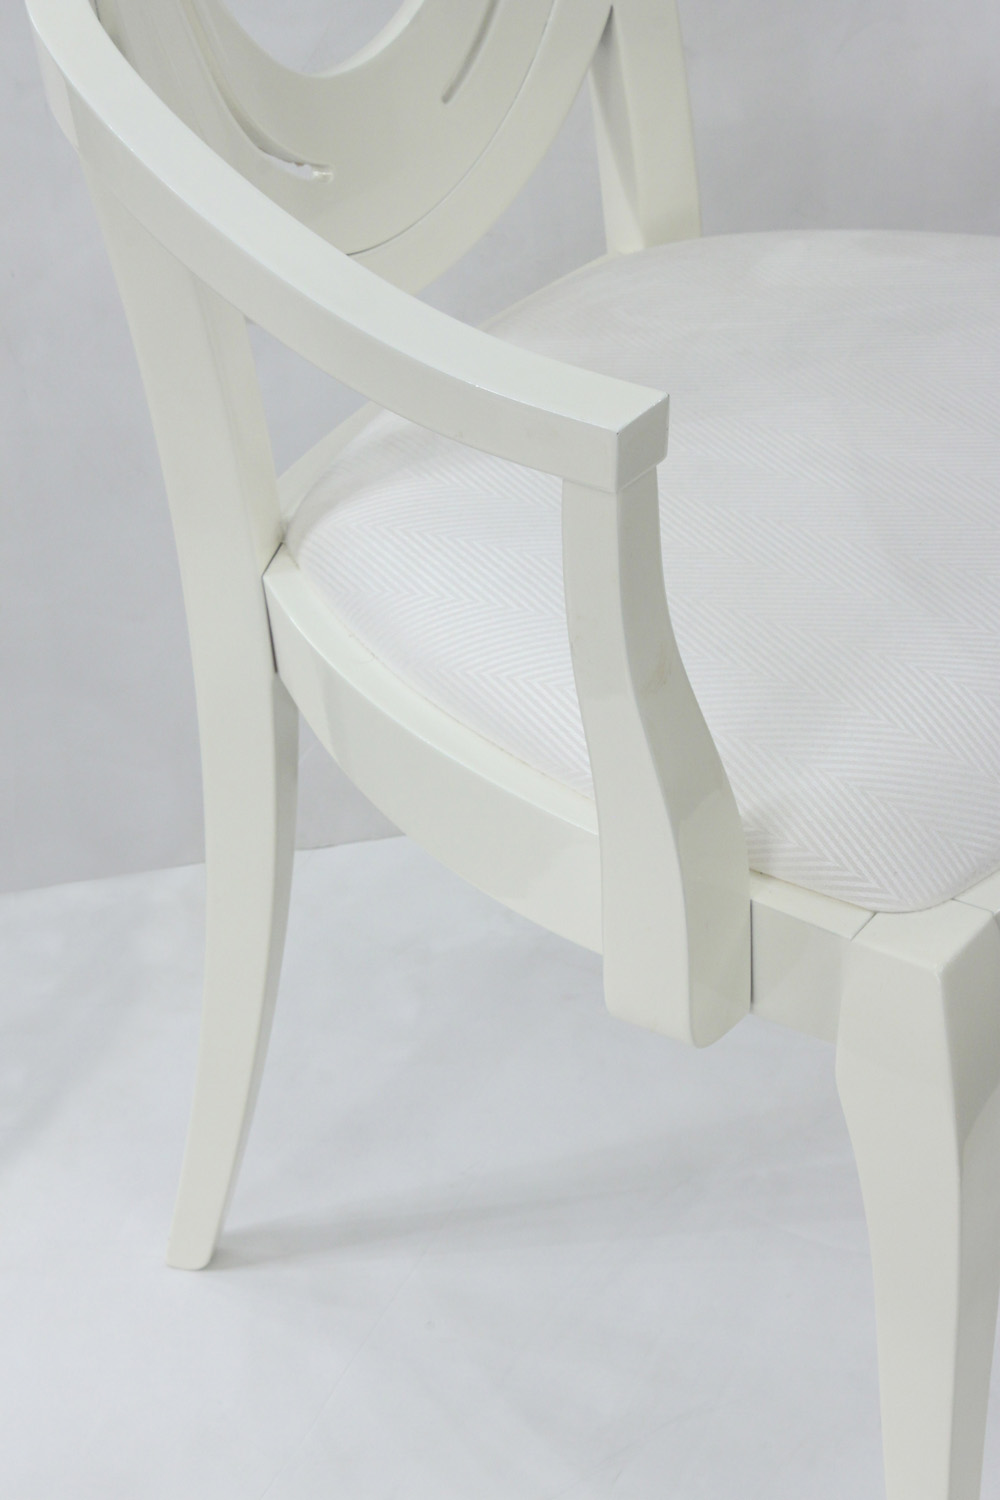 Ital 150 70's draped fabric motic diningchairs172 detail6 hires.jpg